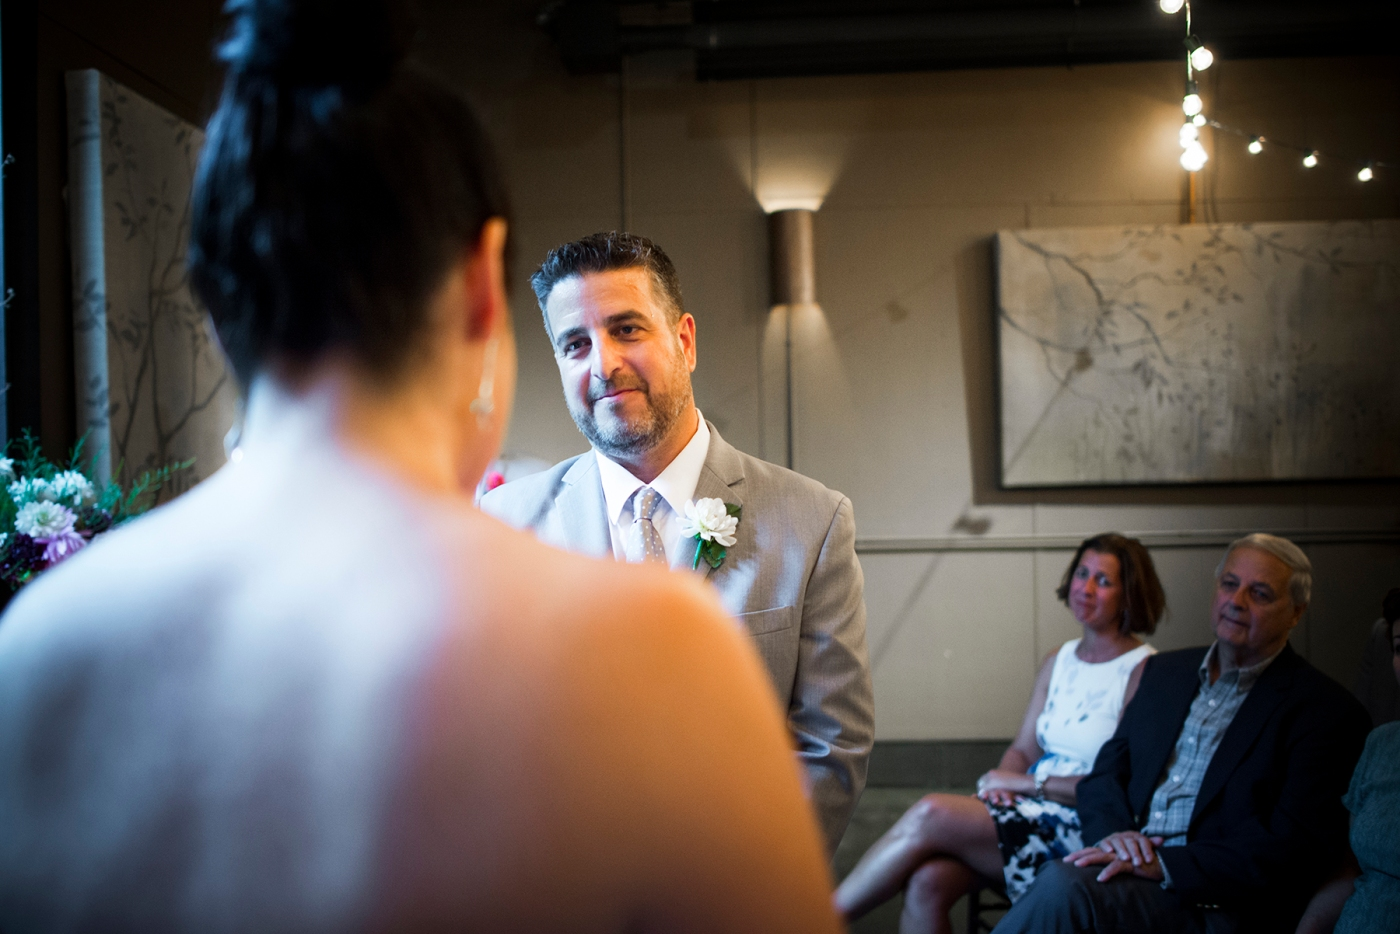 ang_matt_jm_woodinville_2016_js_photography_weddingdsc_3279